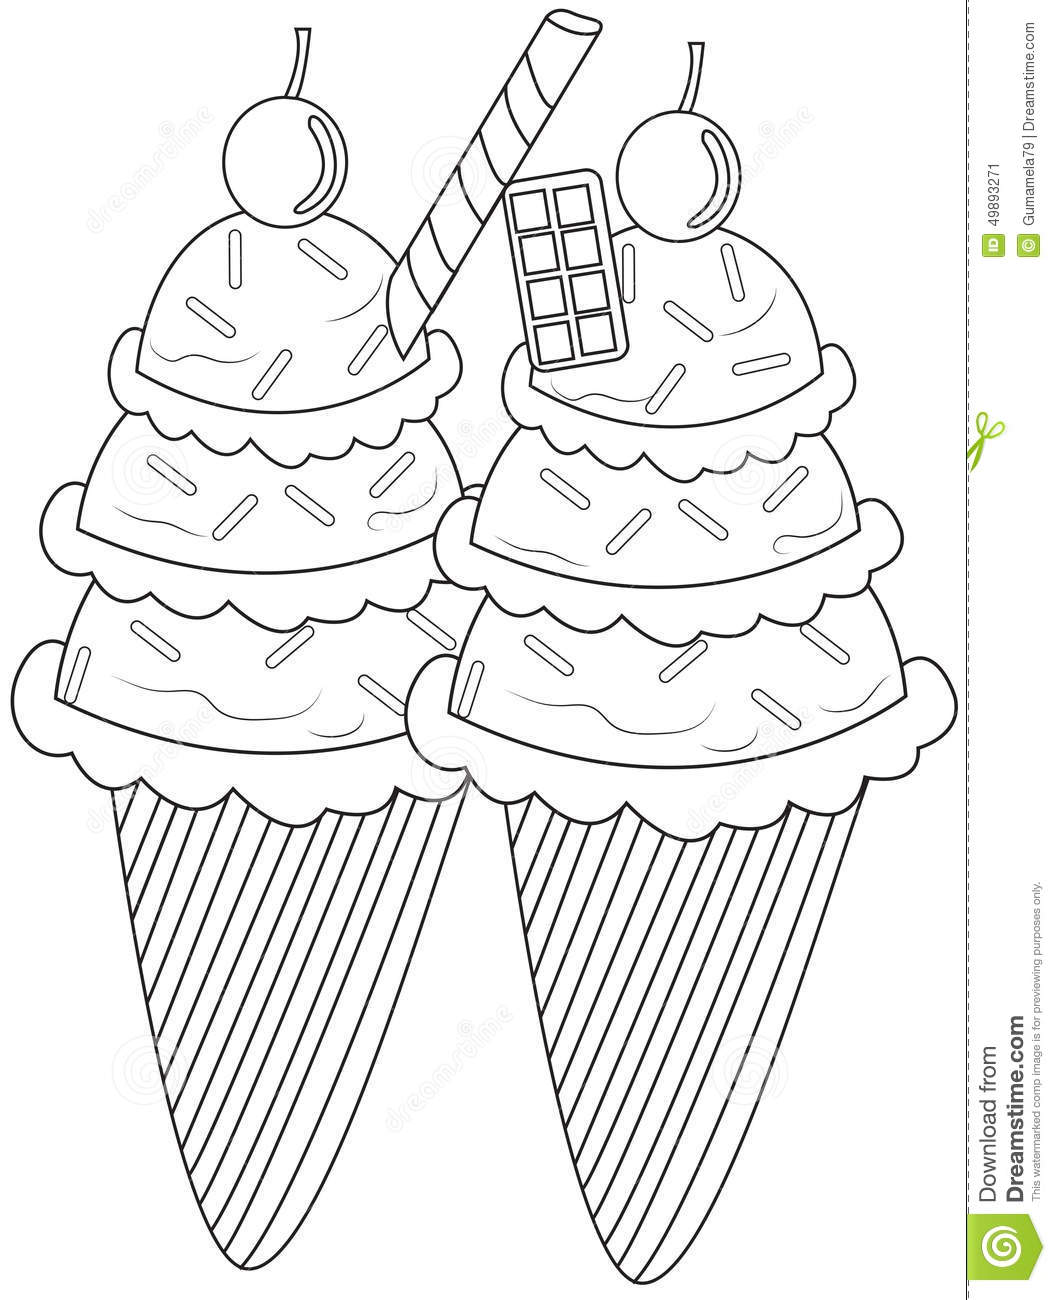 Free coloring pages ice cream sundae - Free Coloring Pages Of Ice Cream Party